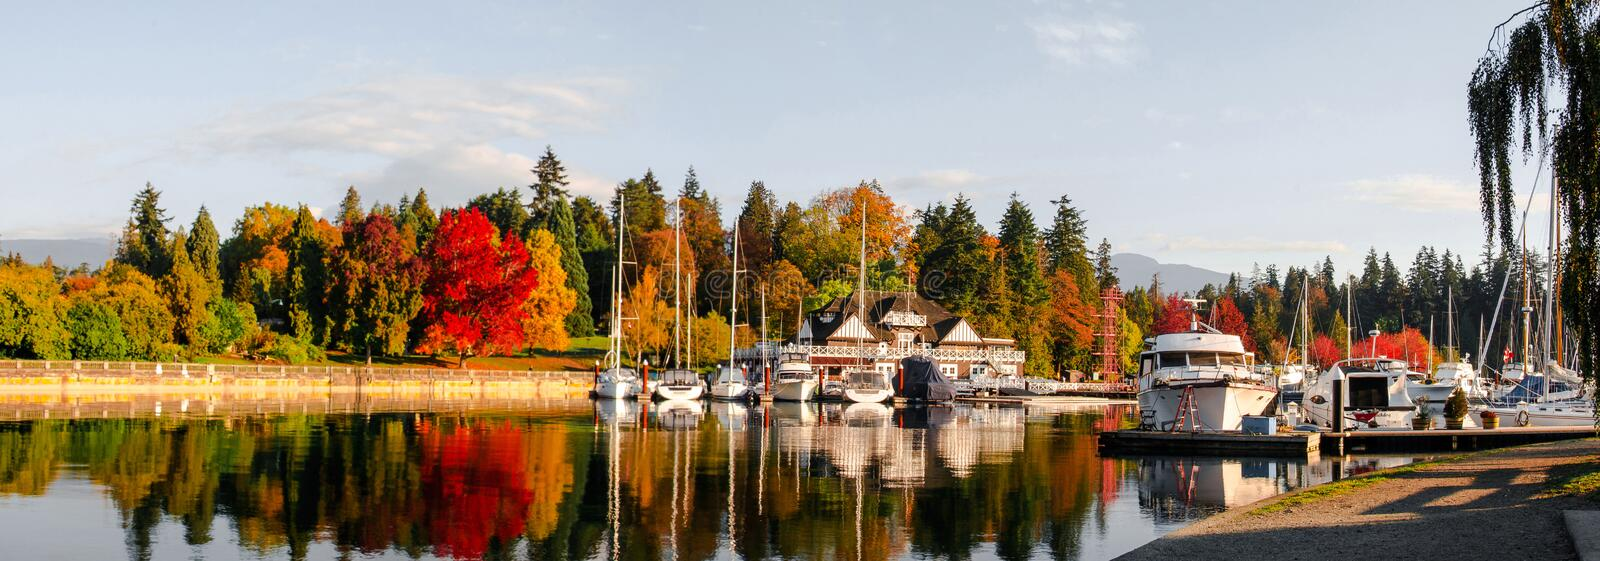 Autumn panoramic view of Vancouver skyline as seen from Stanley Park, British Columbia, Canada royalty free stock photography